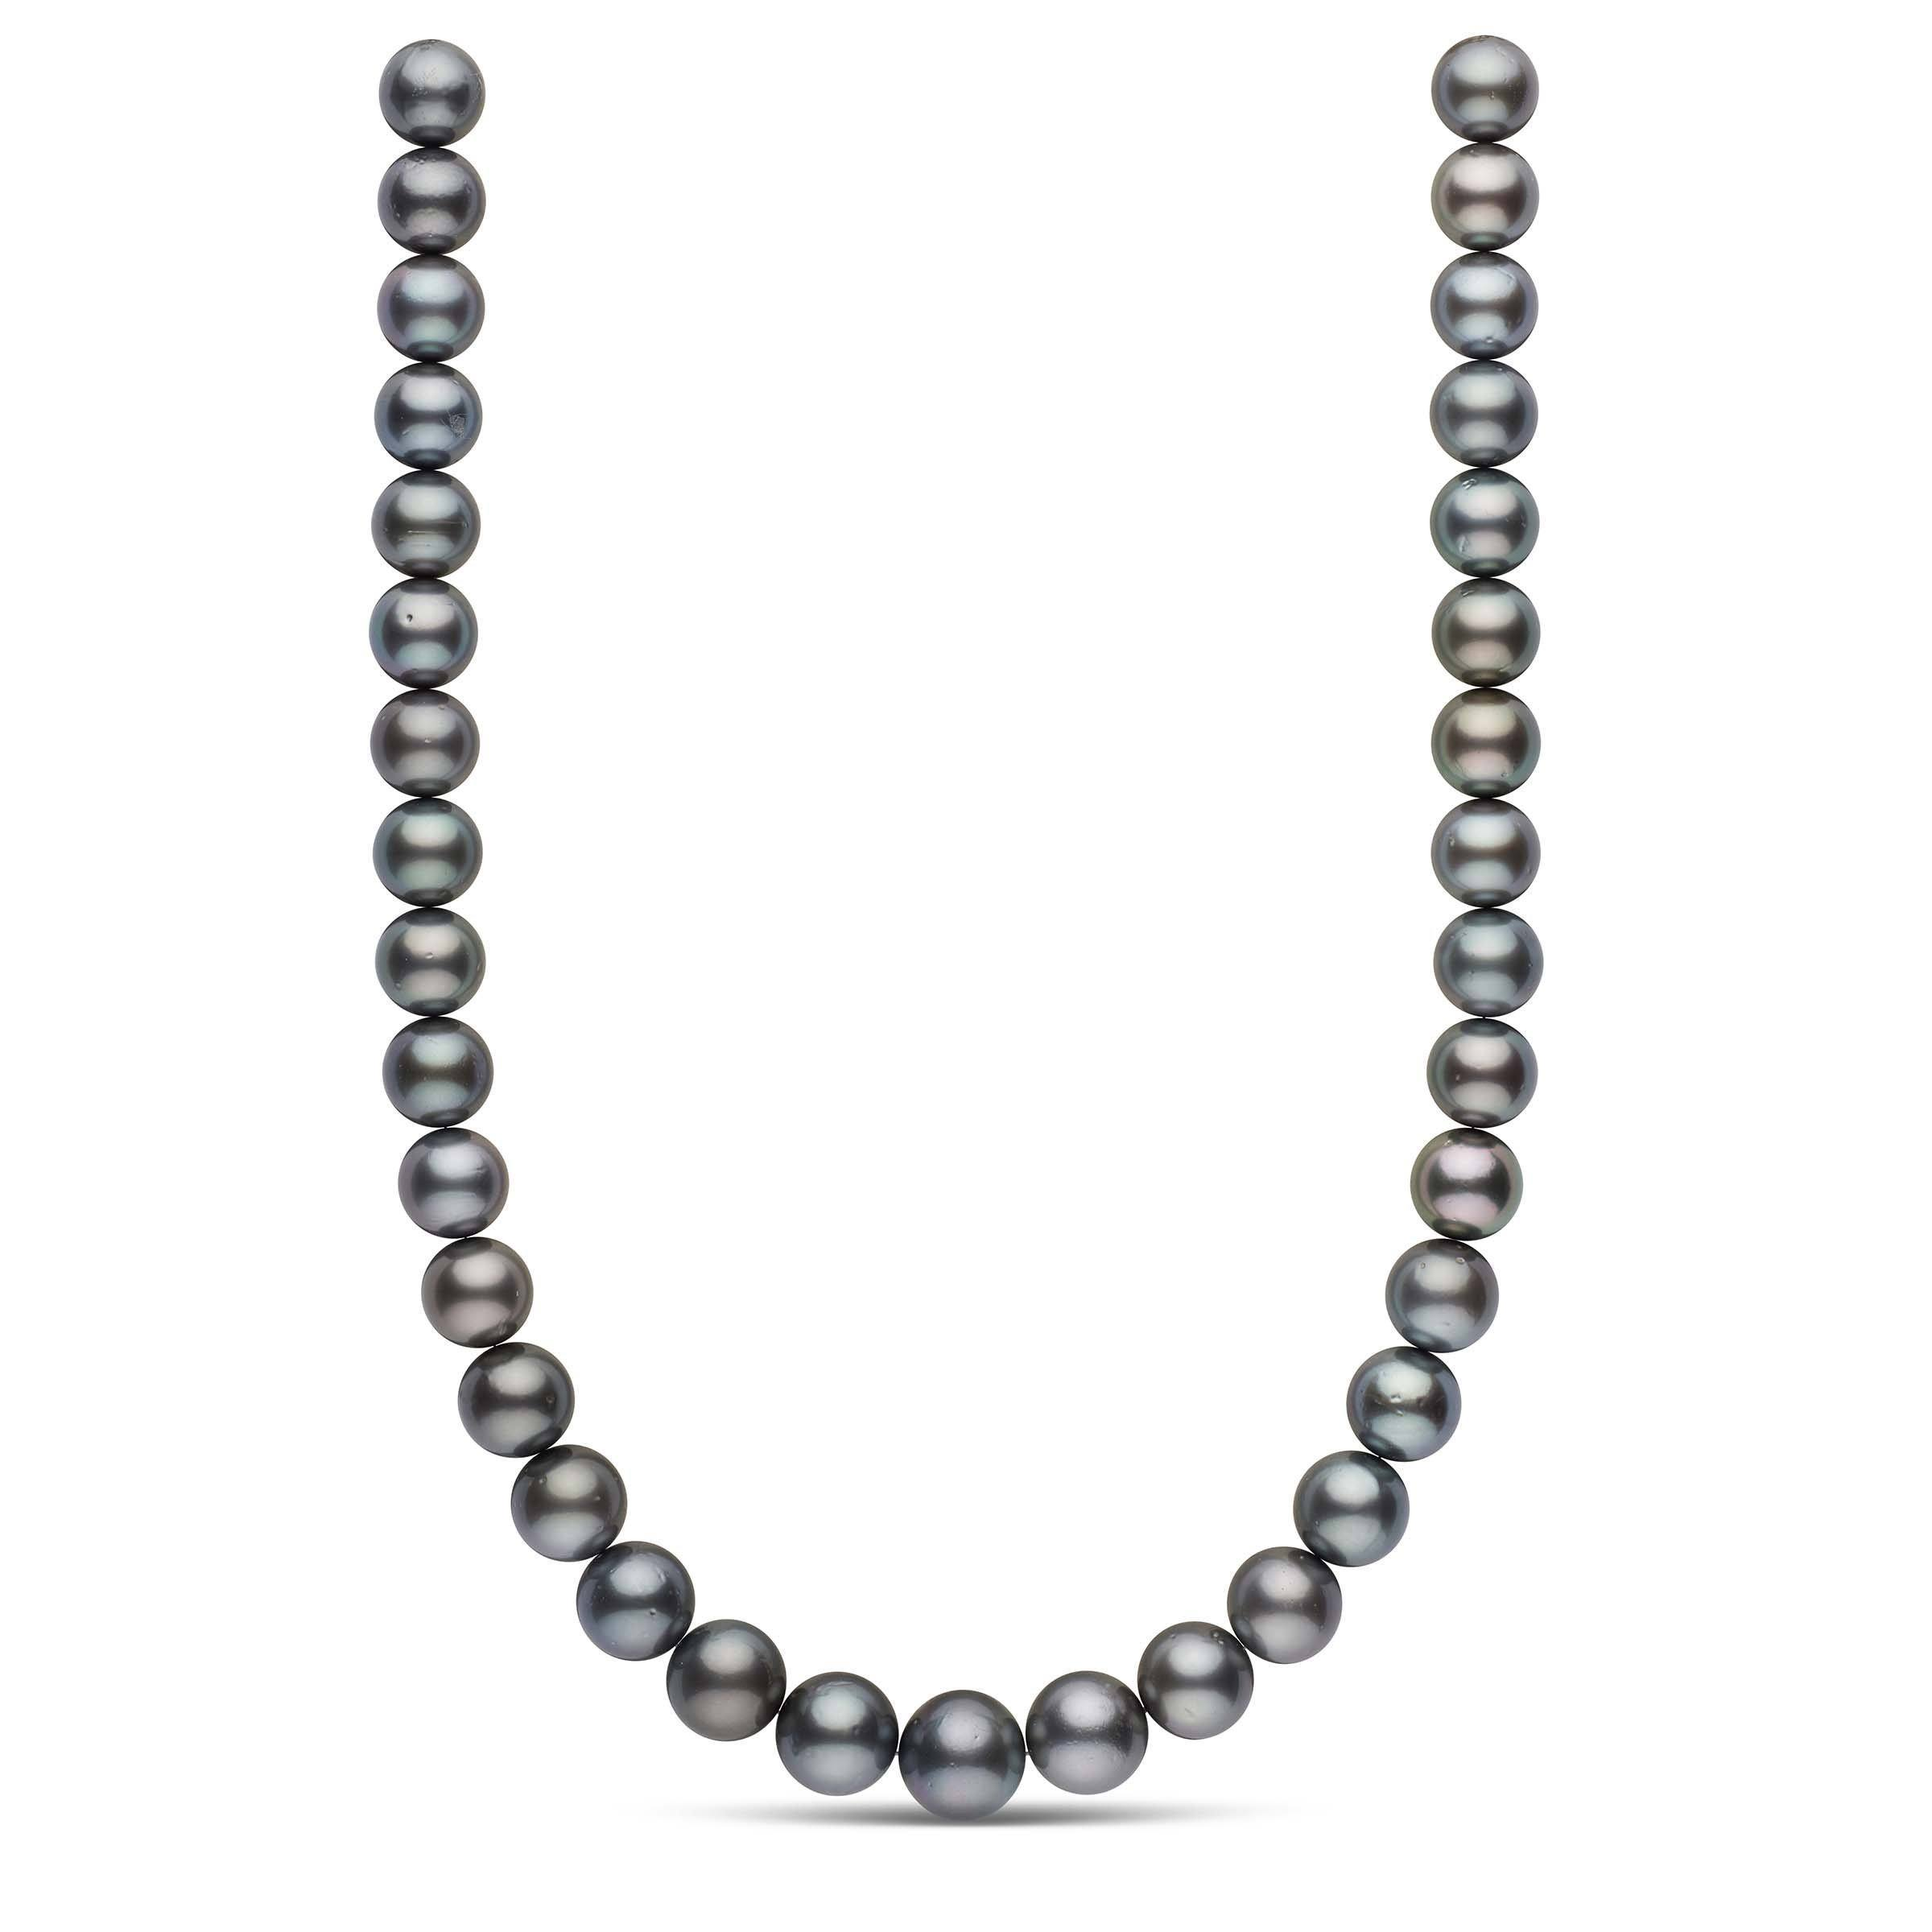 12.0-14.7 mm AA+ Round Tahitian Pearl Necklace